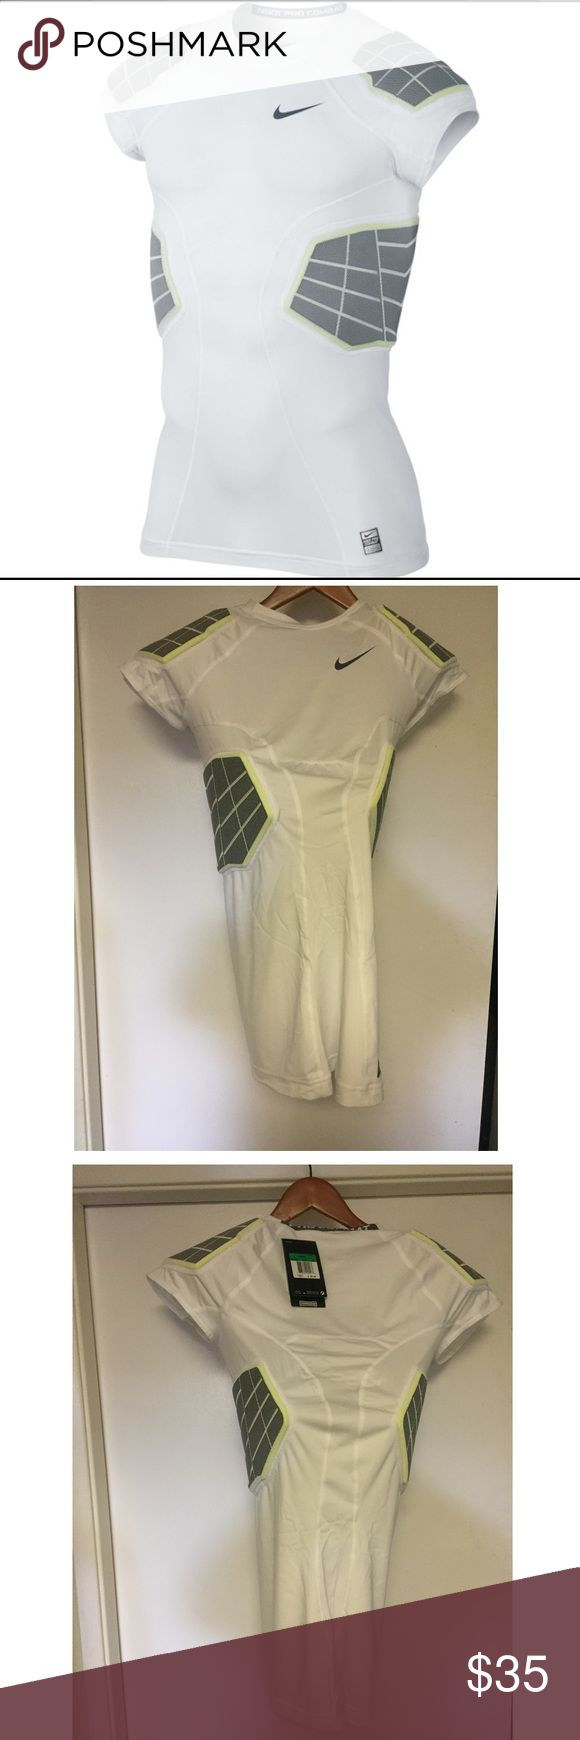 Nike Pro Combat Hyperstrong 4 Pad Football Shirt Brand : Nike  Color : White/Grey-Volt   Size : Men's XL    4 Pads    BRAND NEW WITH TAGS Nike Shirts Tees - Short Sleeve